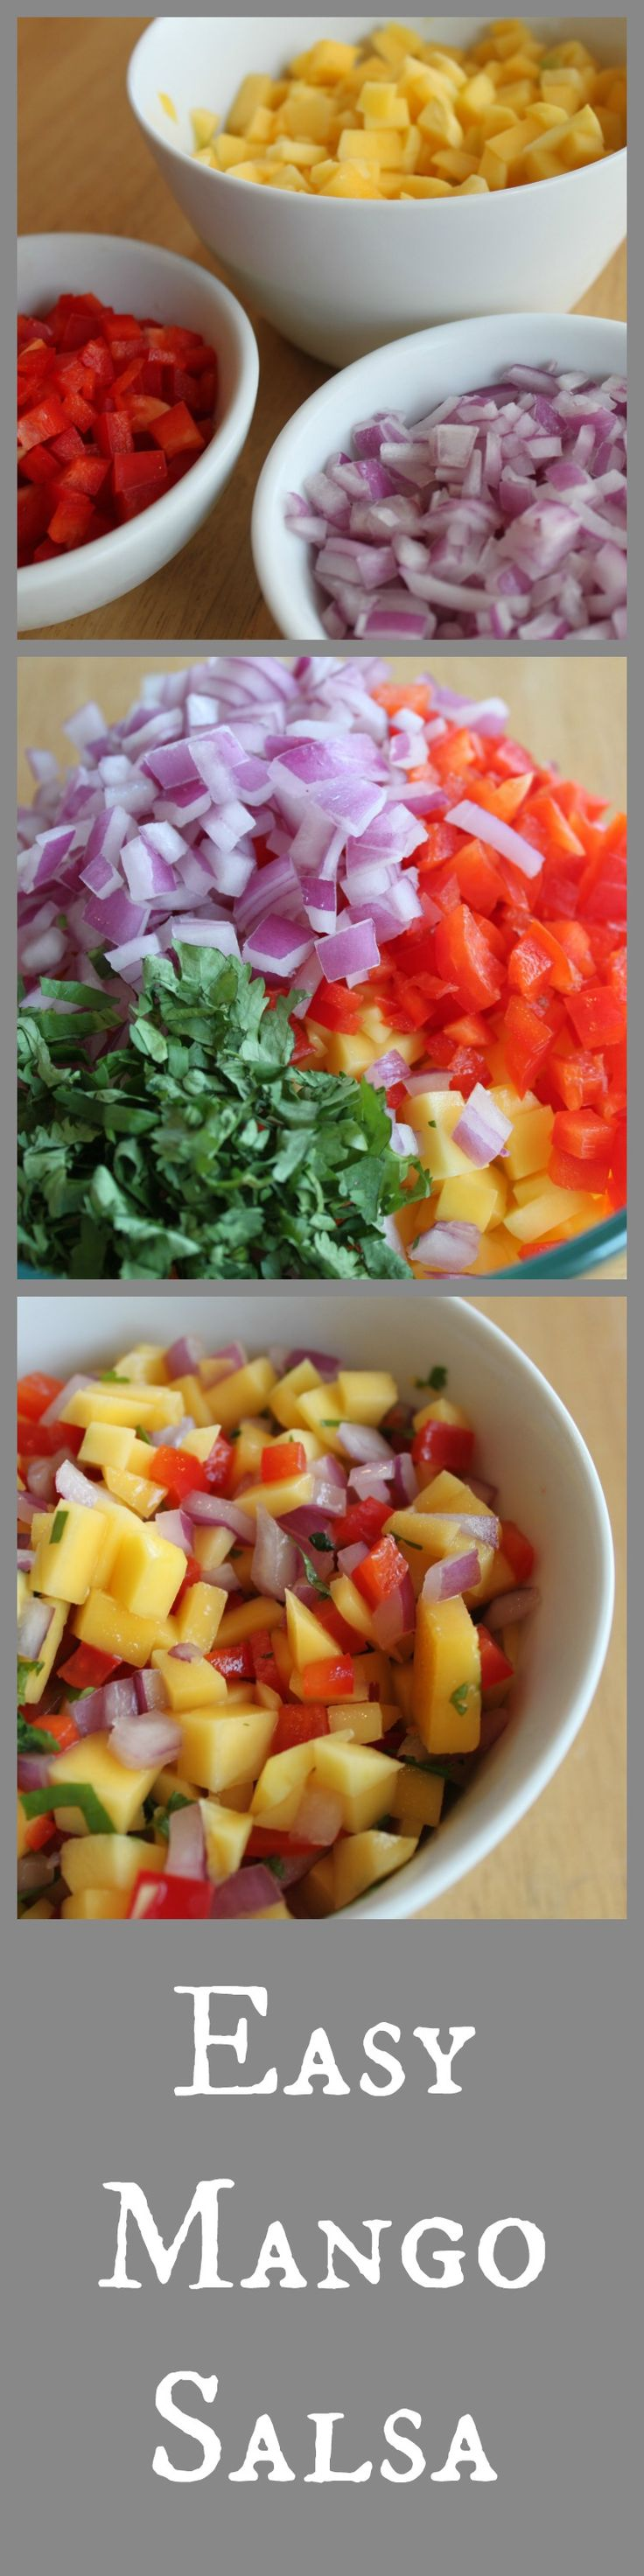 Easy Mango Salsa! mmm, on top on scrambled eggs?!= the best! add some avocado and it'll be even better!